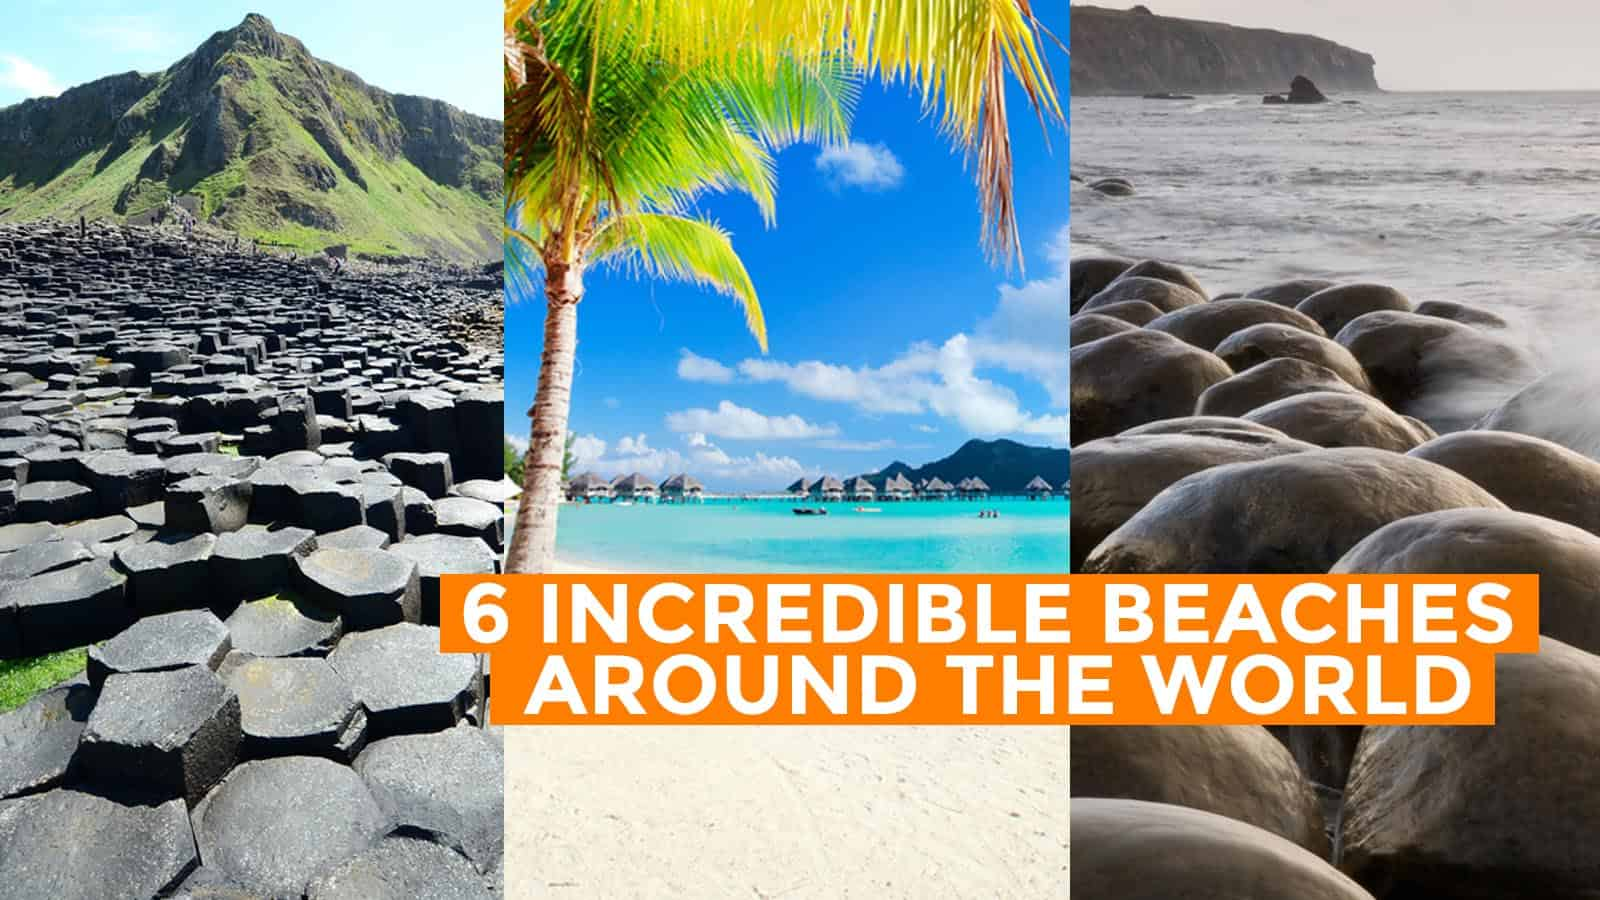 6 Incredible Beaches Around the World